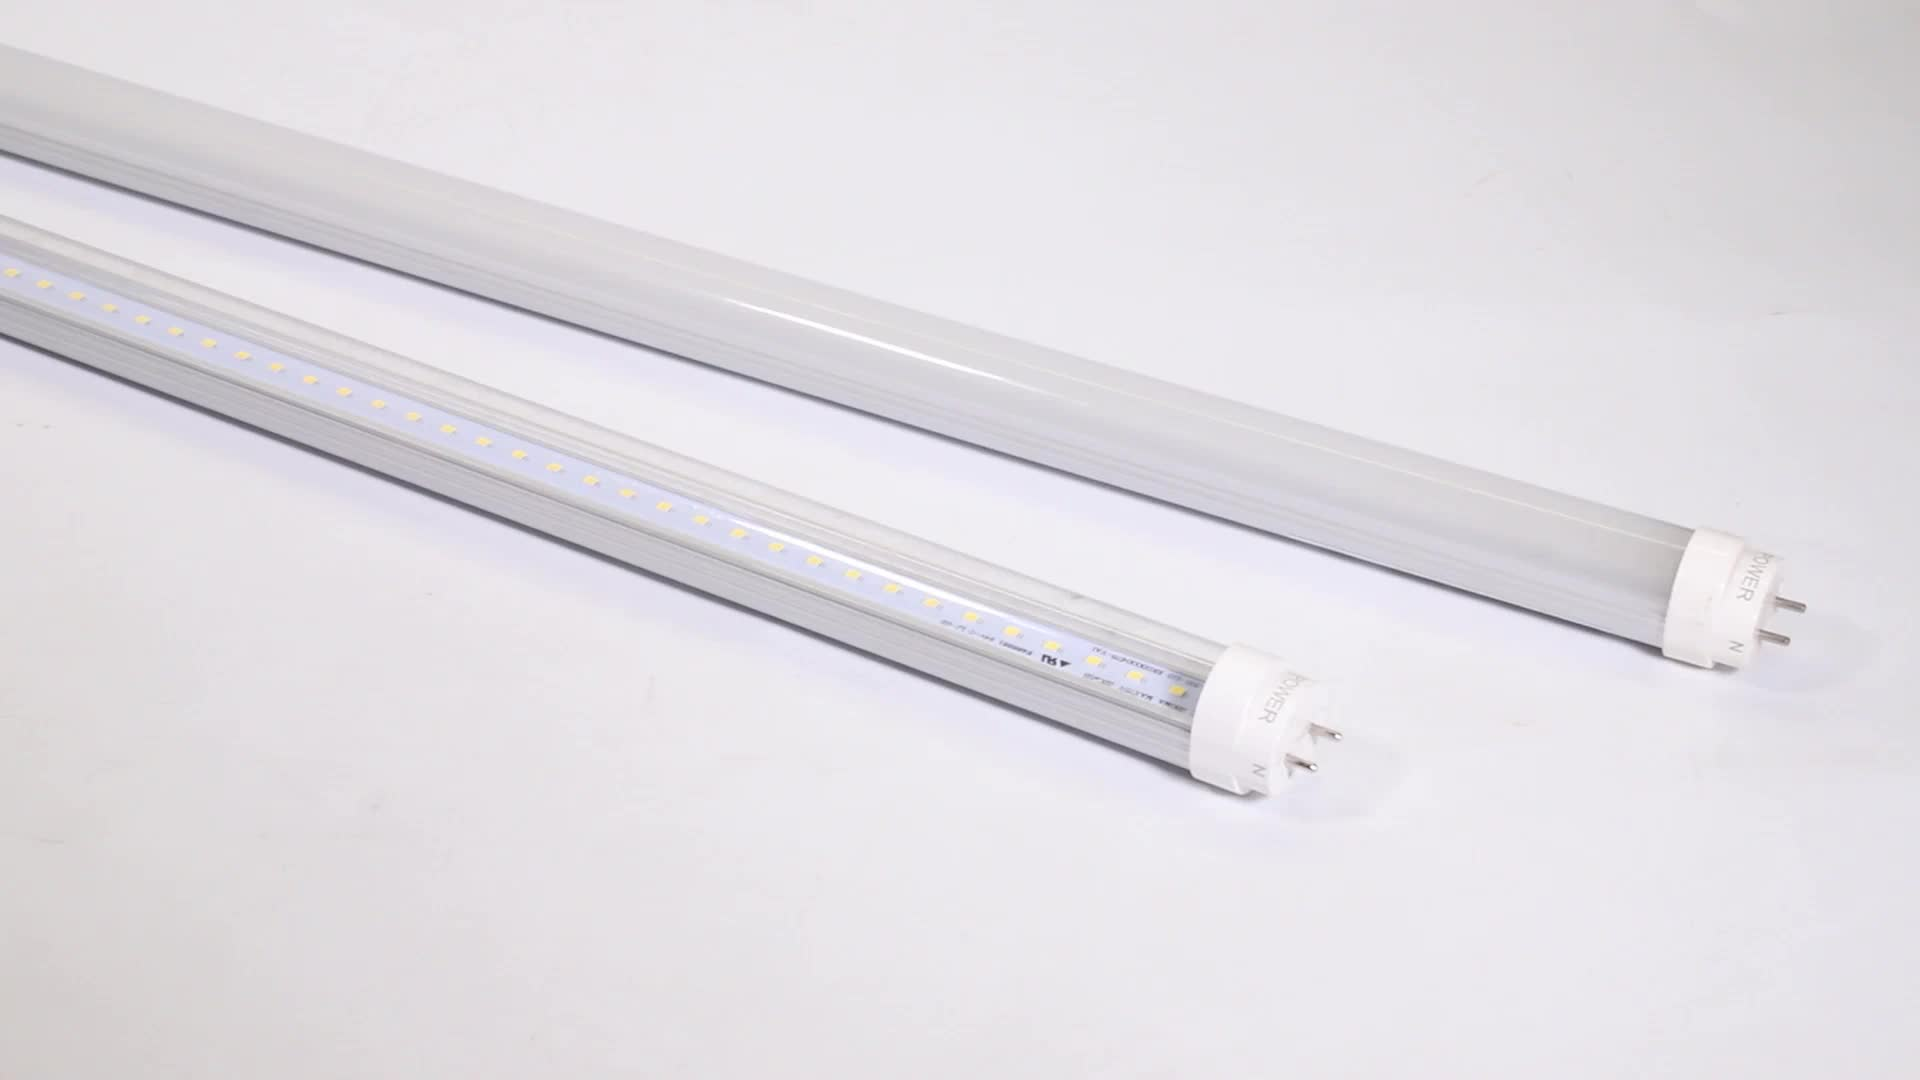 emergency best price 120cm 18w 4 foot 2815 smd chip t8 led tube light for office lighting with TUV C-tick approval